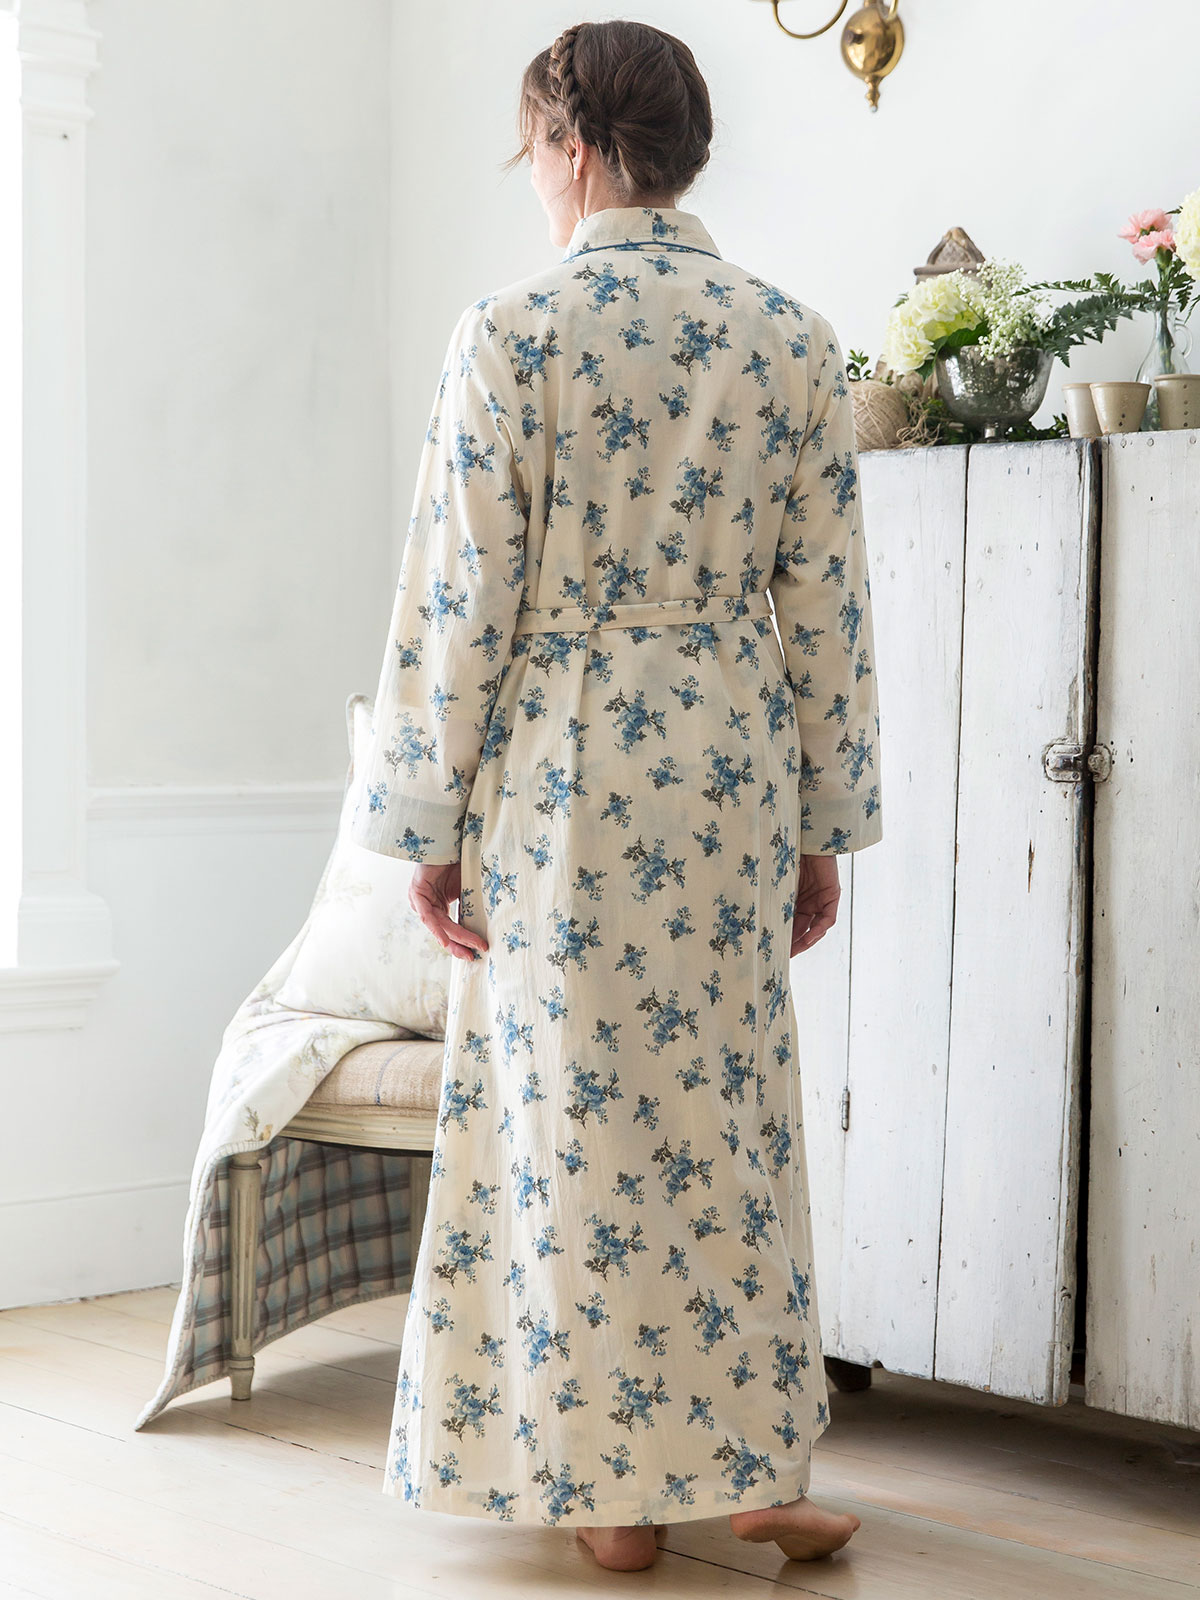 Shy Rose Dressing Gown | Ladies Clothing, Nighties & Dressing Gowns ...